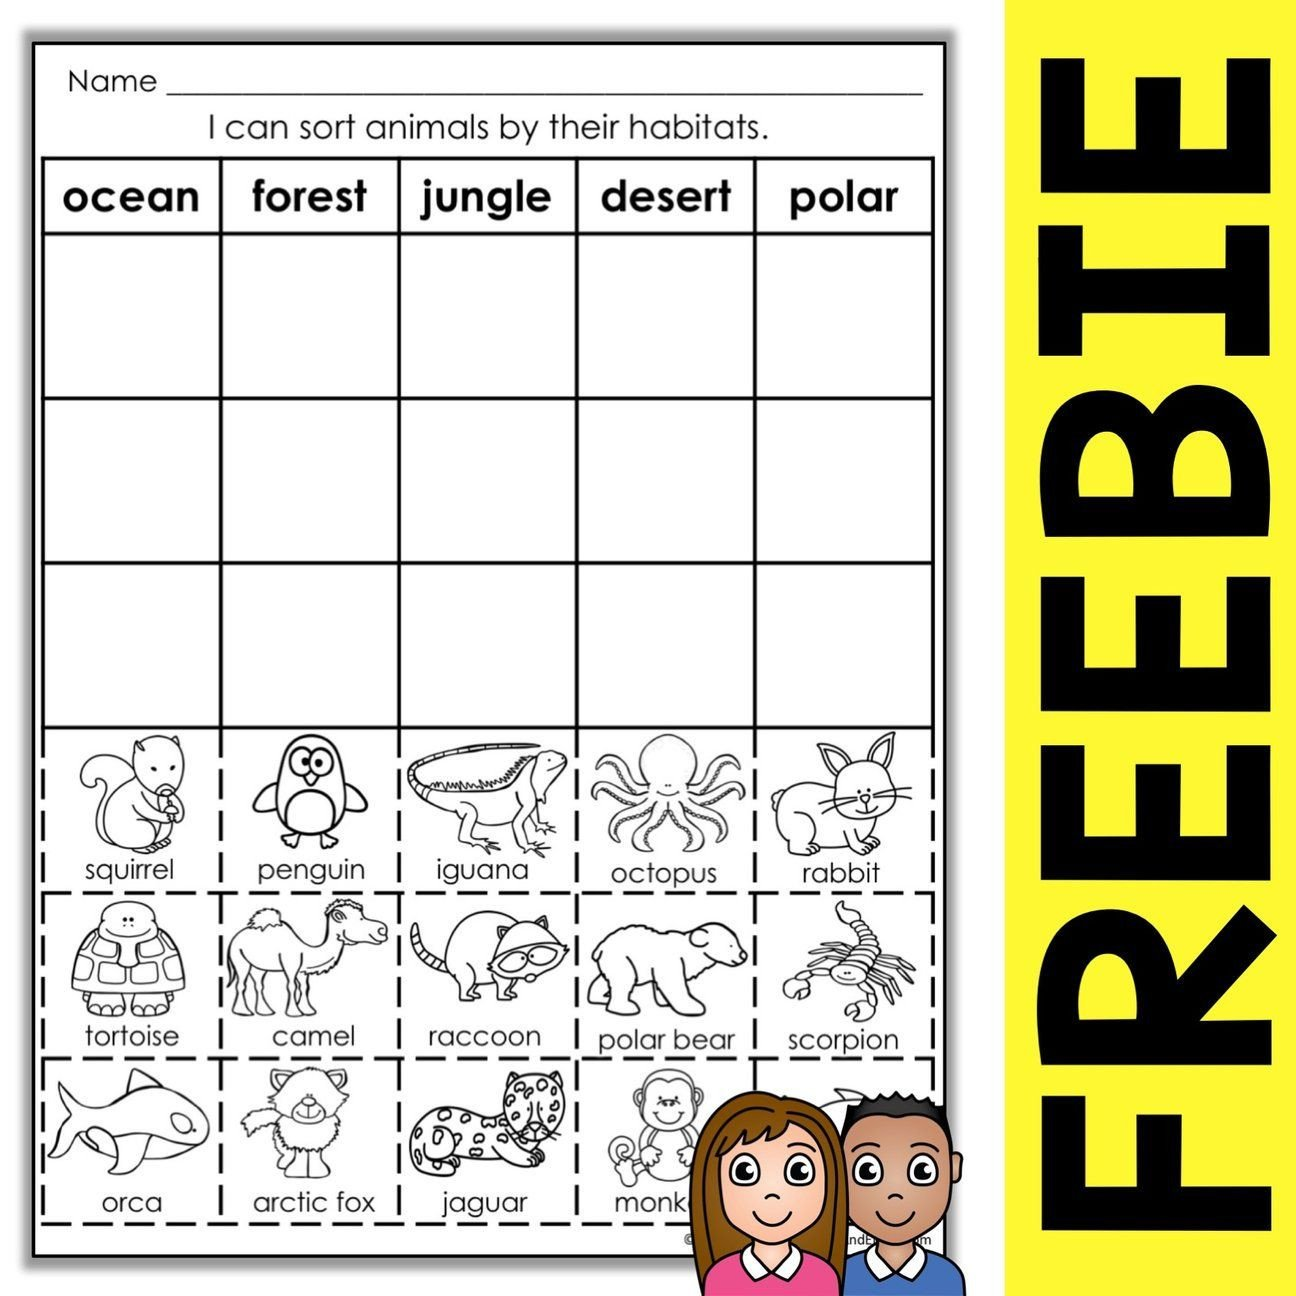 Animal Habitats Worksheets for Kindergarten Free Animal Habitat sort Activity – Nicole and Eliceo